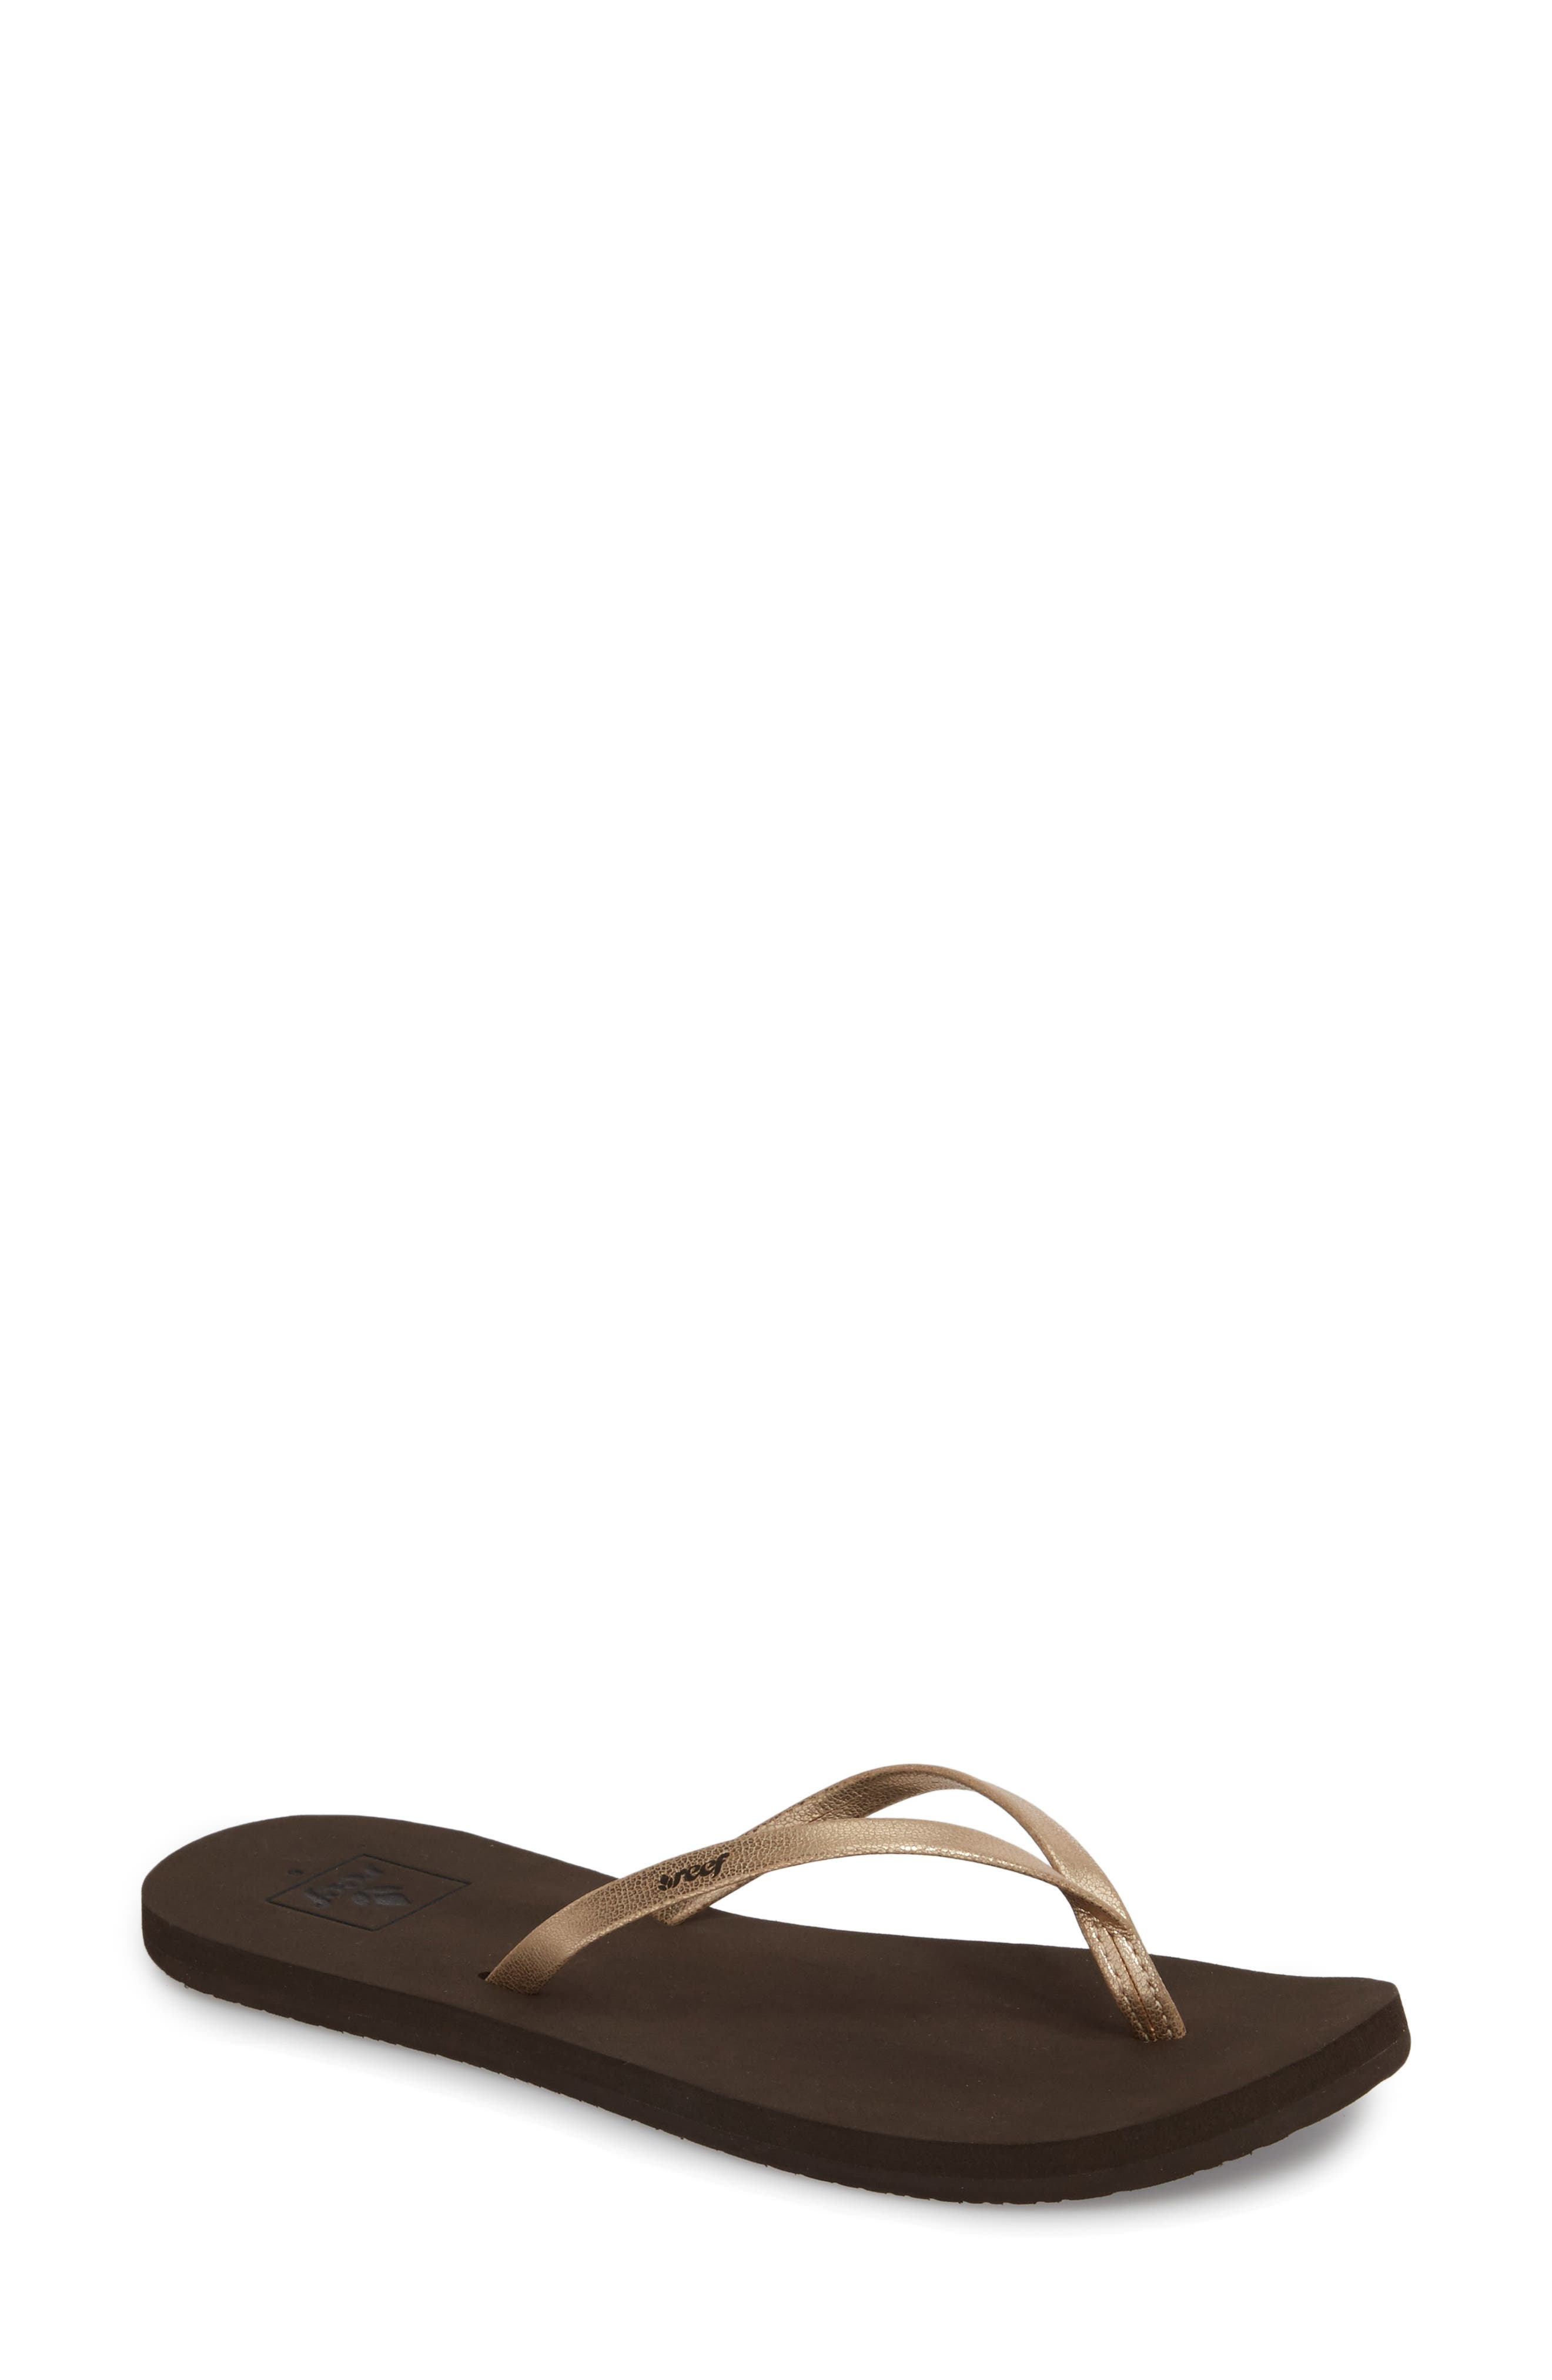 REEF, Bliss Nights Flip Flop, Main thumbnail 1, color, ROSE GOLD